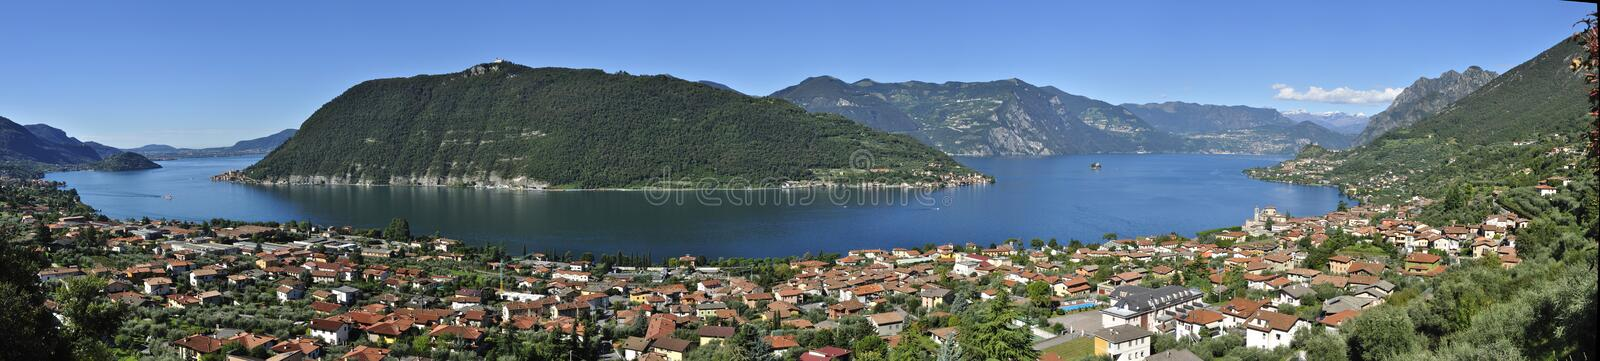 Download Lake Iseo panorama stock image. Image of lombardy, brescia - 16251759